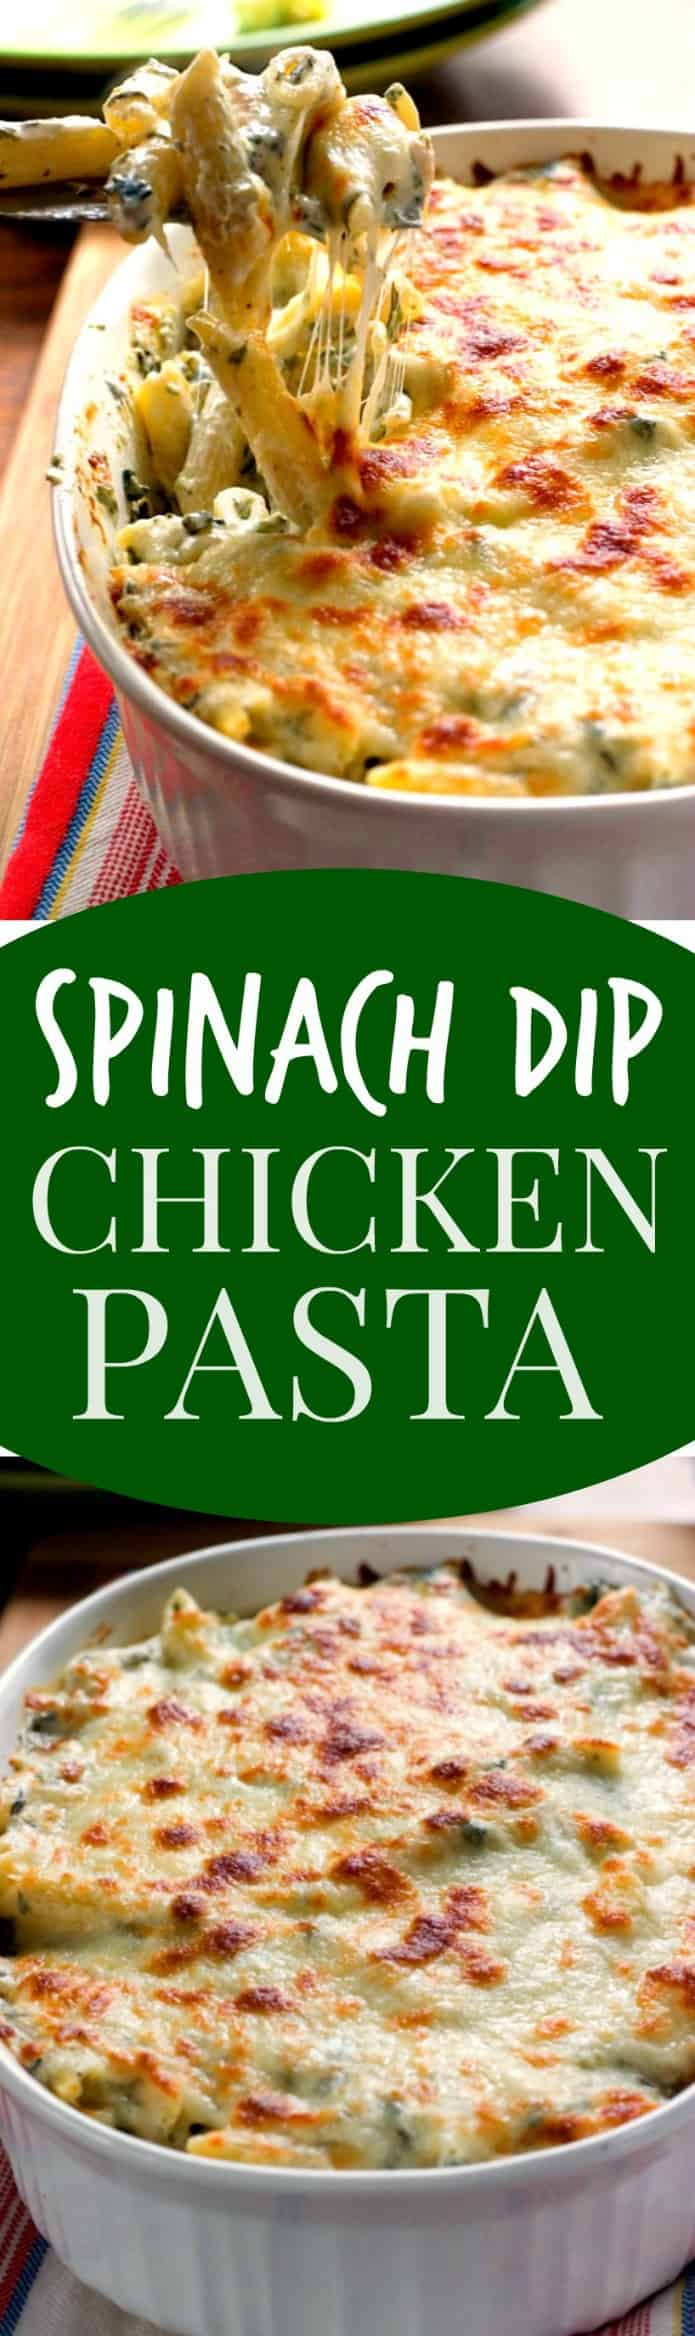 spinach dip chicken pasta long Cheesy Spinach Dip Chicken Pasta